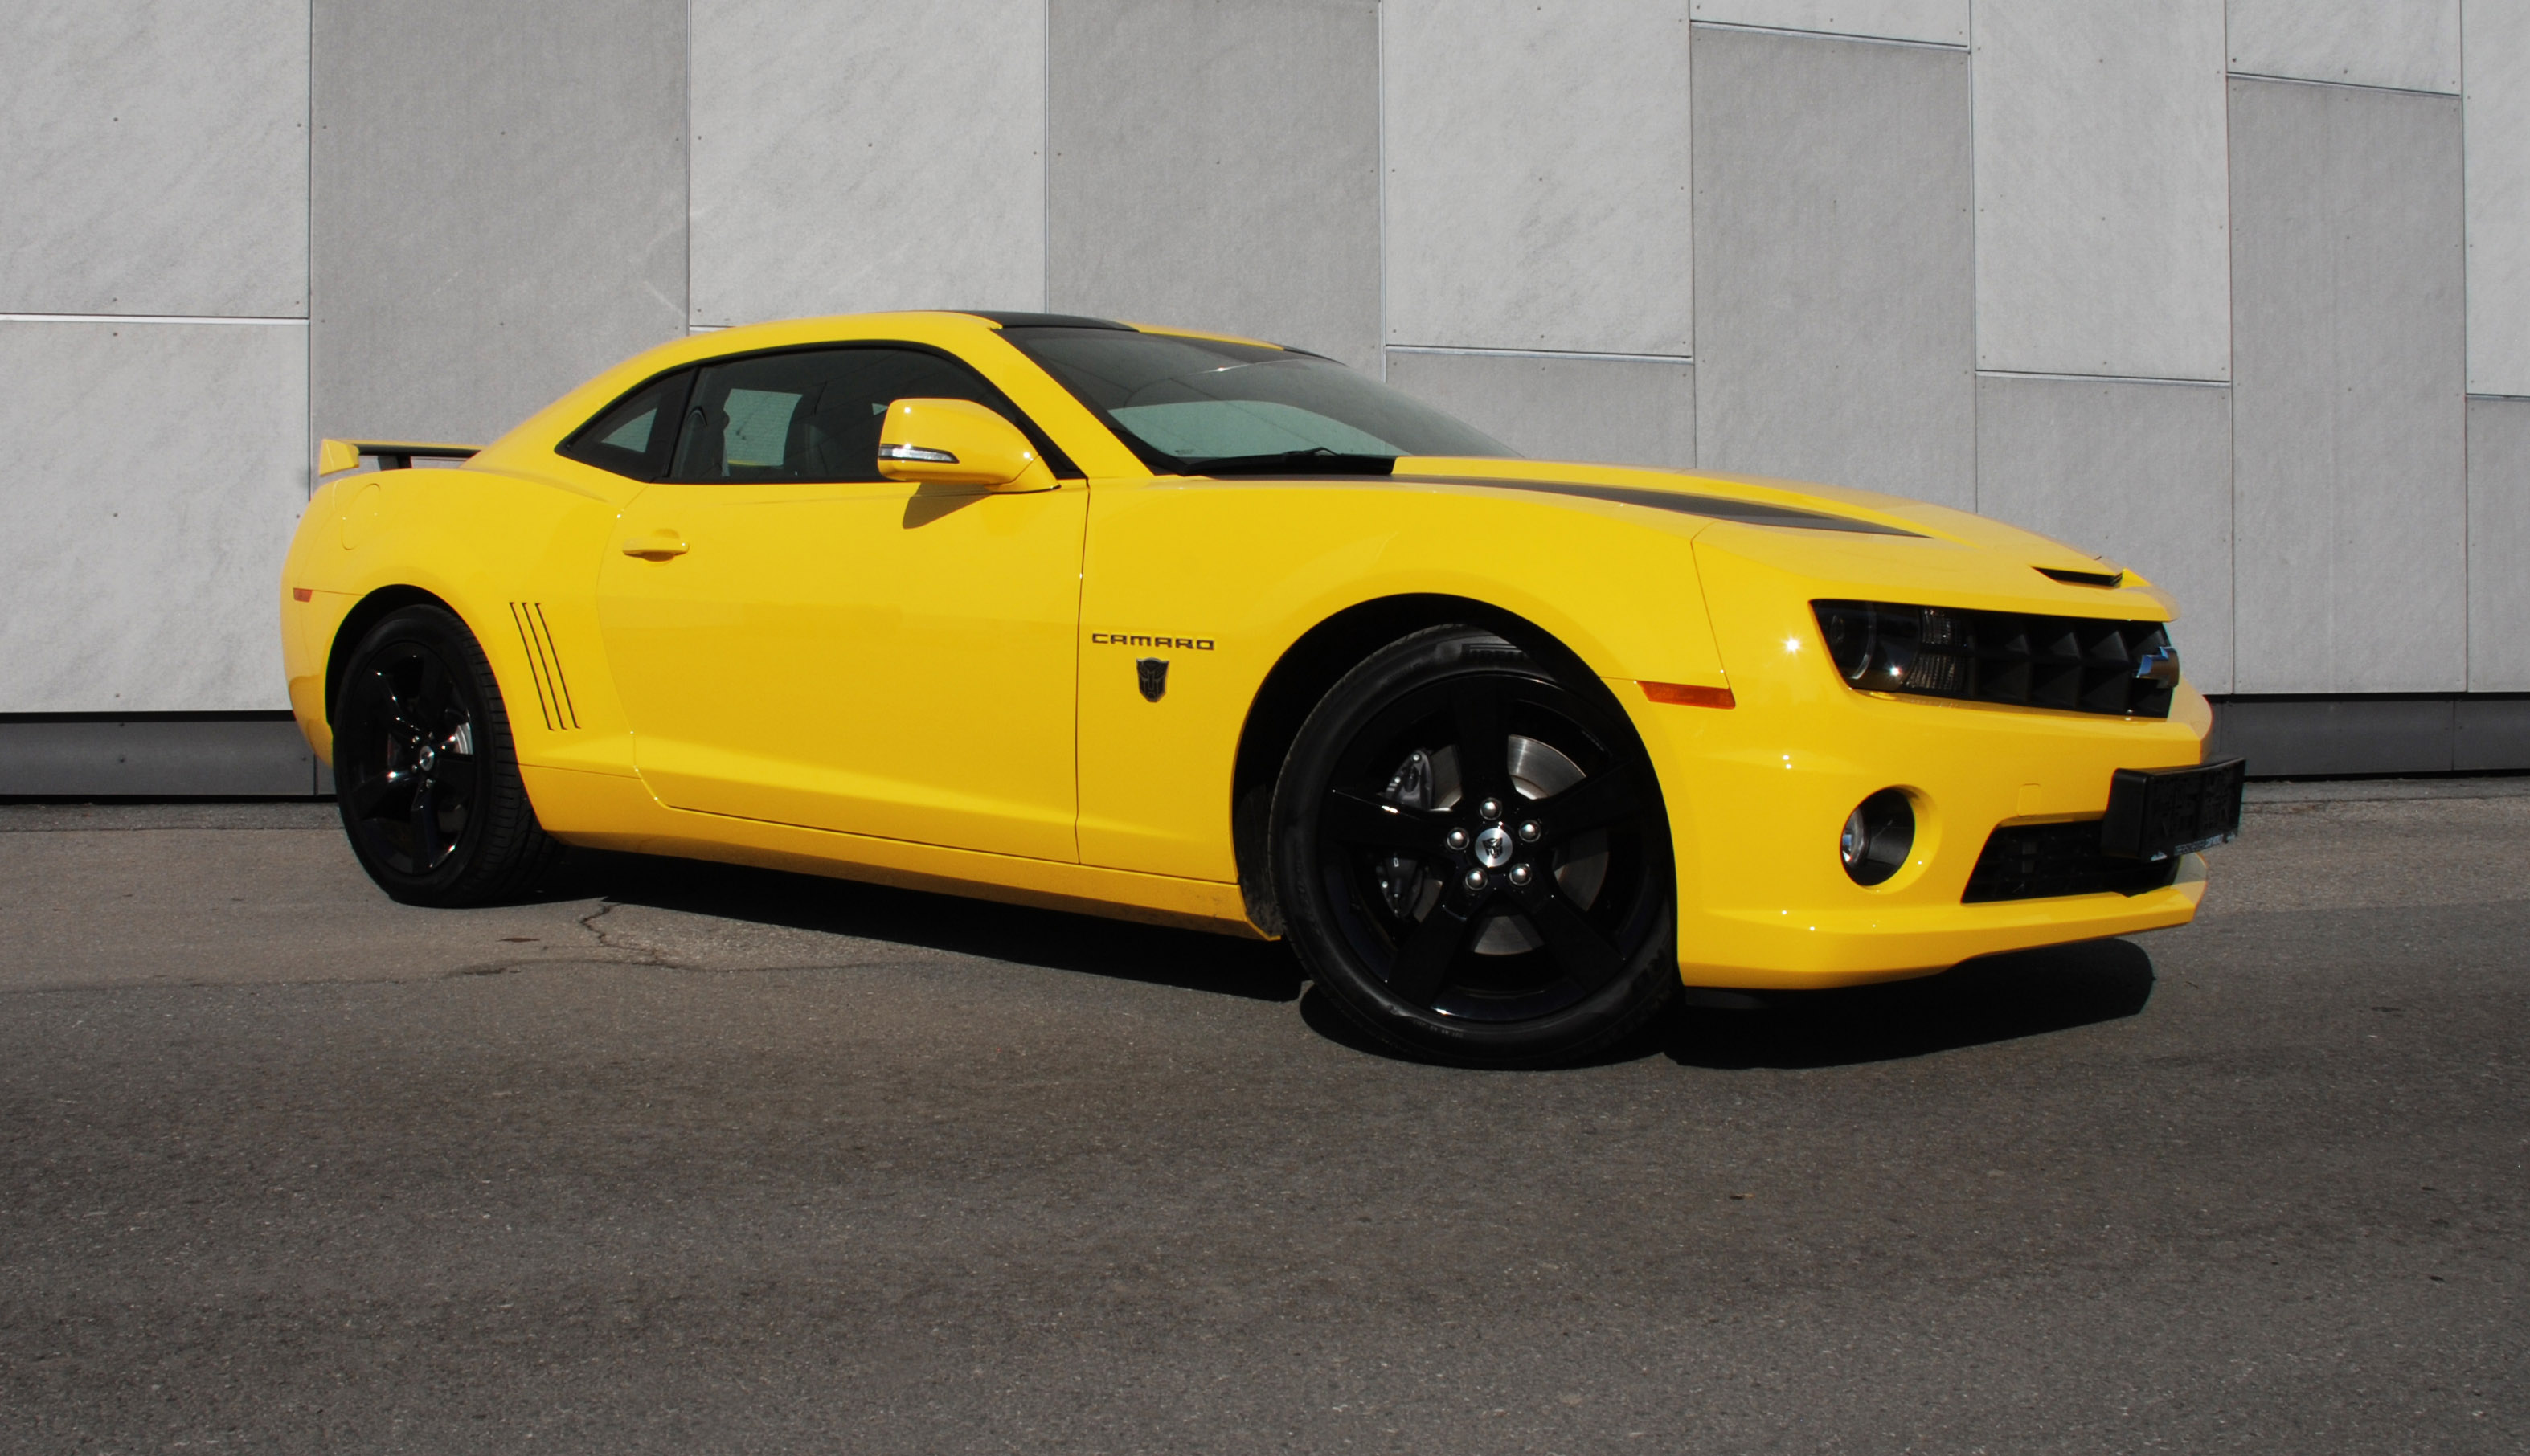 Chevrolet Camaro a.k.a Yellow Steam Hammer by O.CT-Tuning